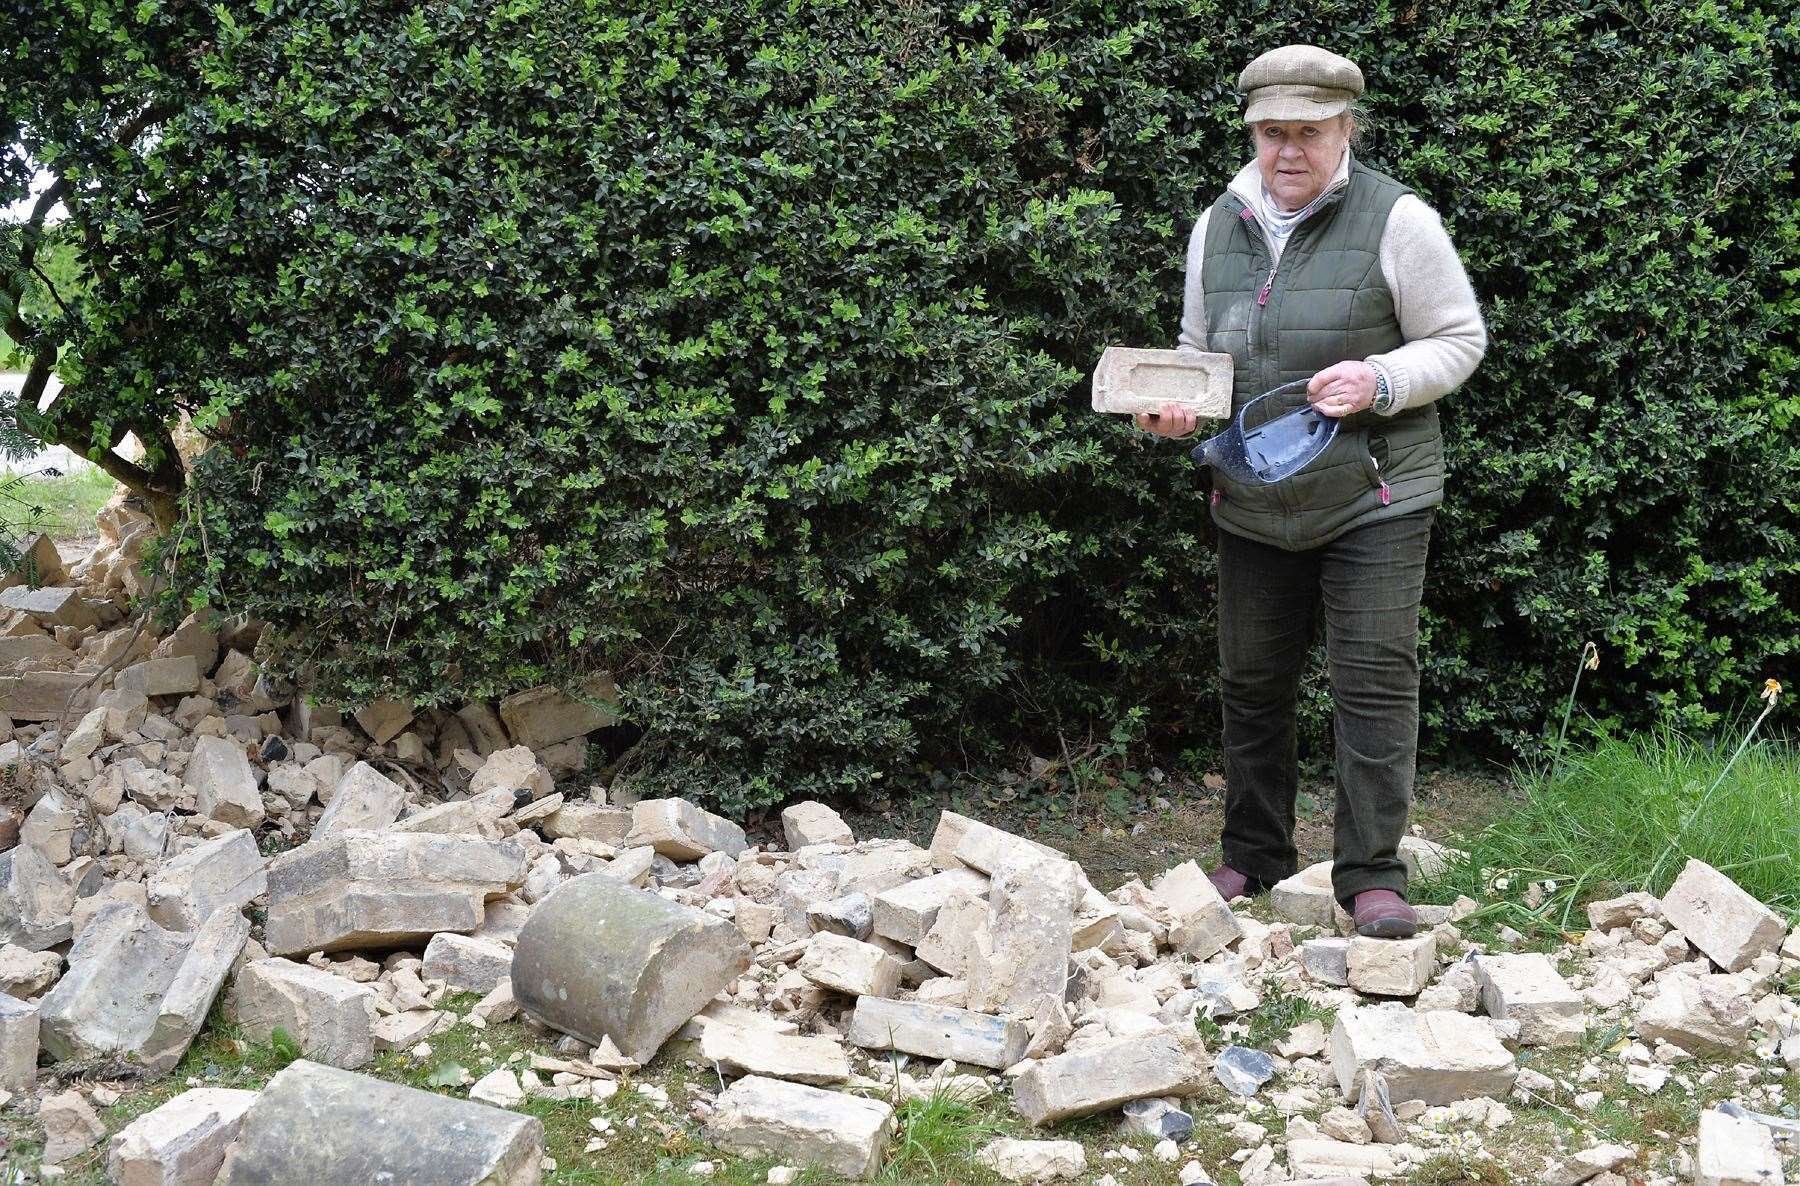 Picking up the pieces yet again ... Victoria Coldrey surveys the damage to her wall after it was hit by a car